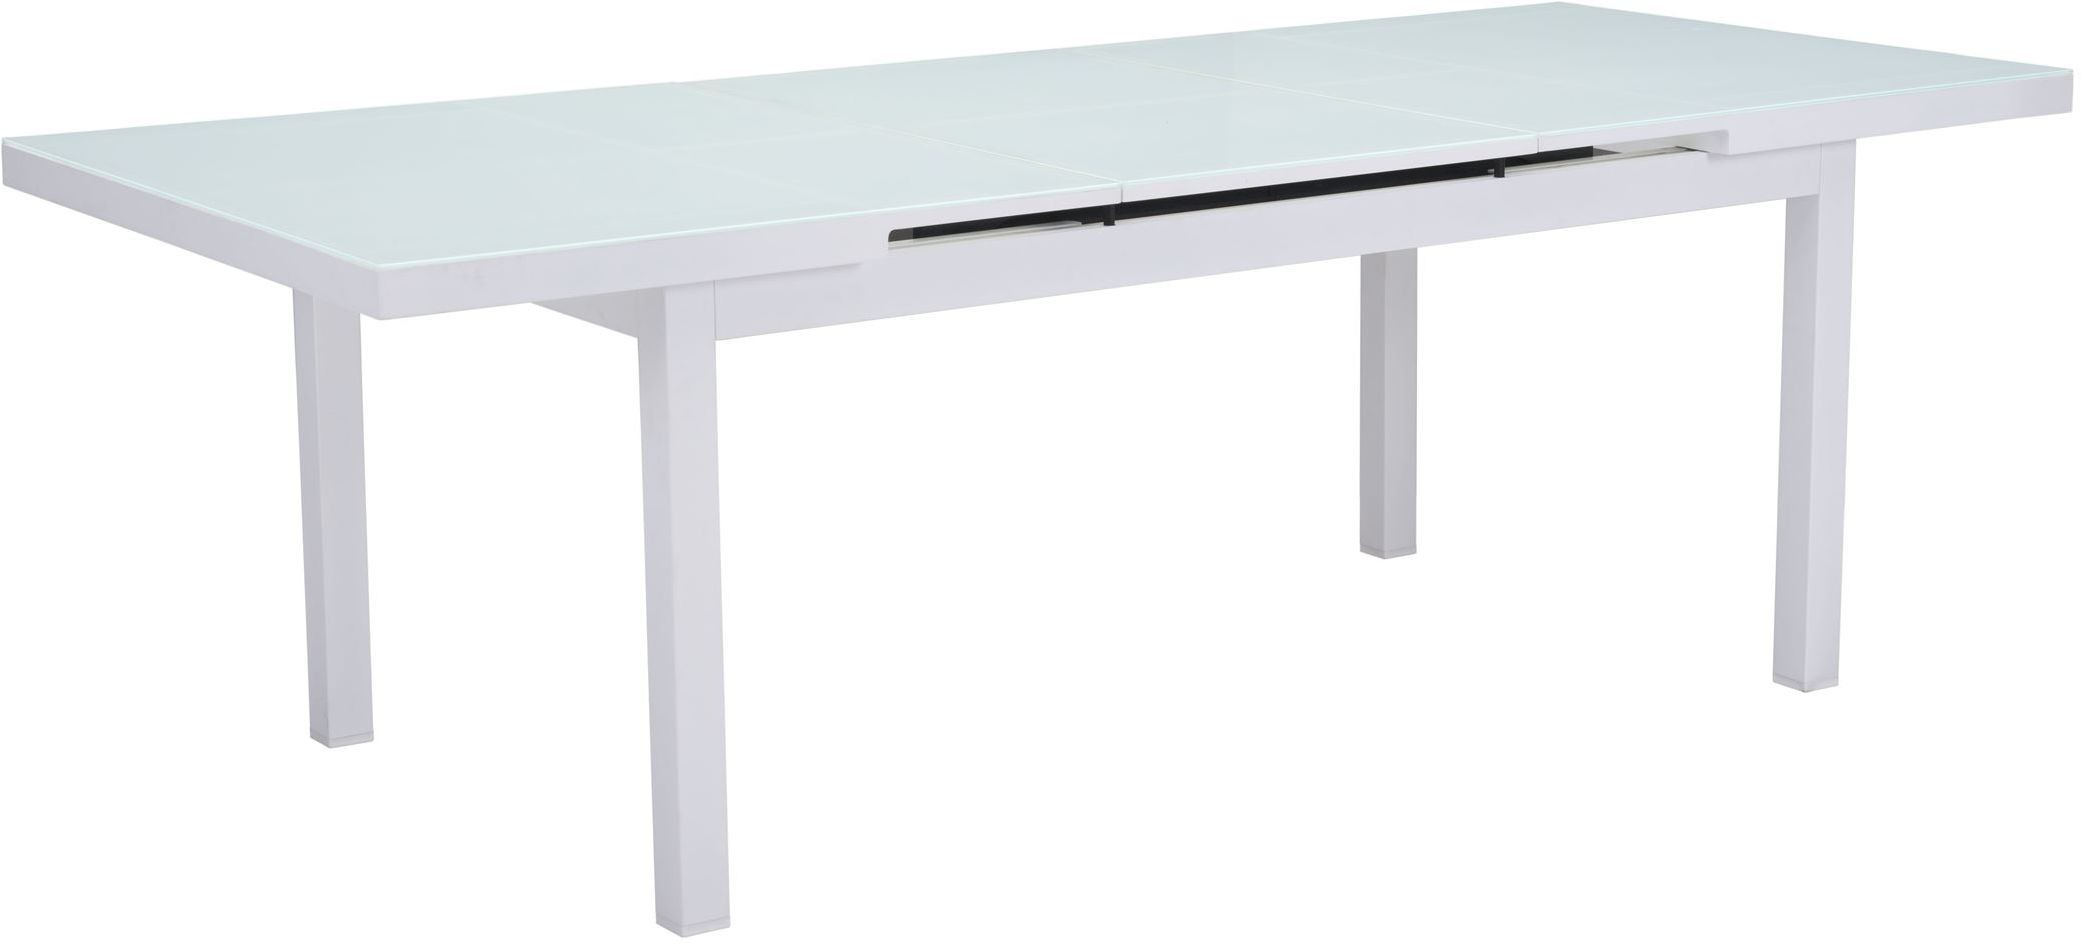 Mayakoba White Extendable Dining Table From Zuo Coleman